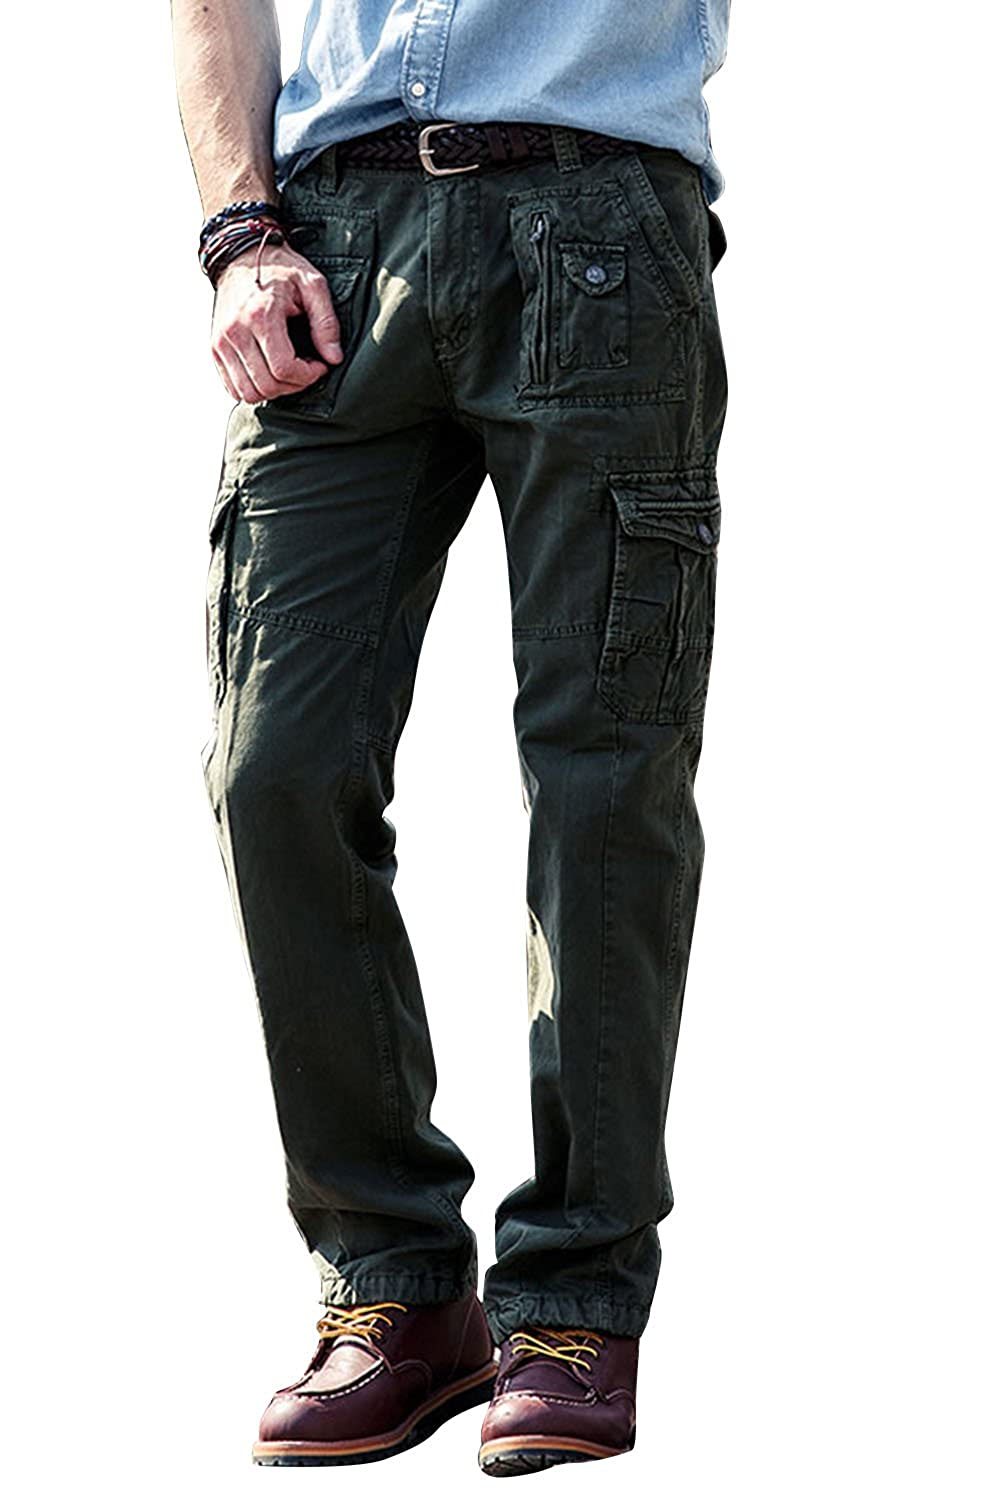 3db1184d GREAT FIT - True Size 29-40,4 color choices.Relaxed fit, Multi Pocket  multipurpose cargo pants.